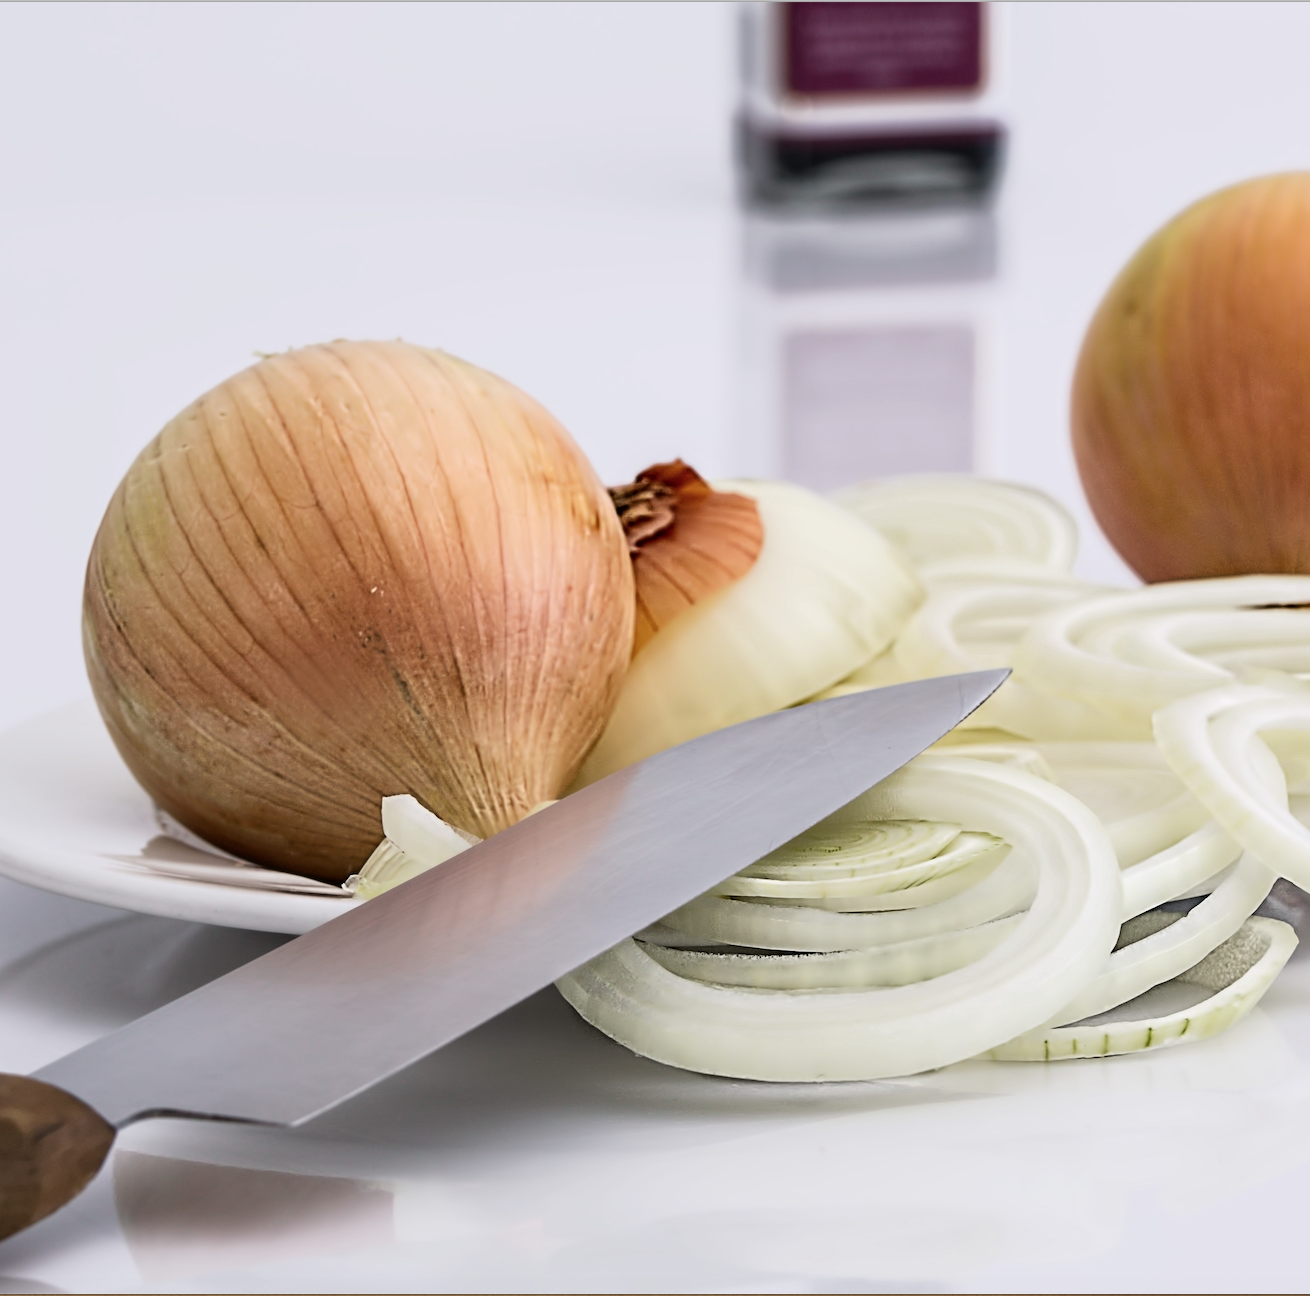 (According to    National Onion Association     🙄  onions can help reduce factors which lead to heart attacks and strokes. And they also make the soup super mega yummy! )